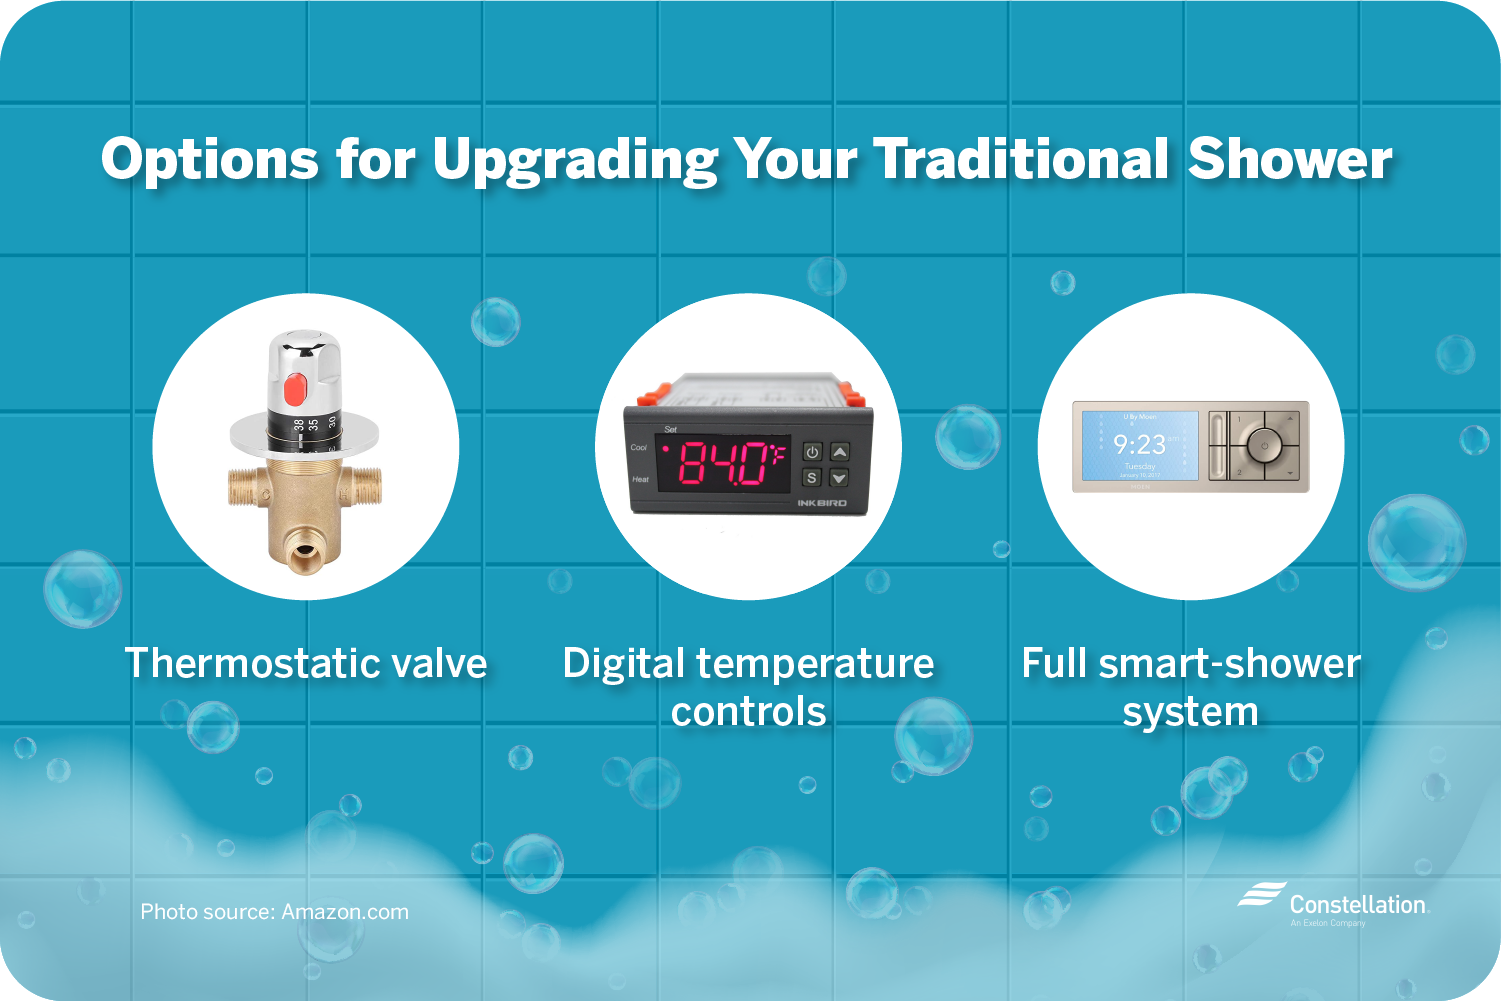 Options for upgrading your traditional shower